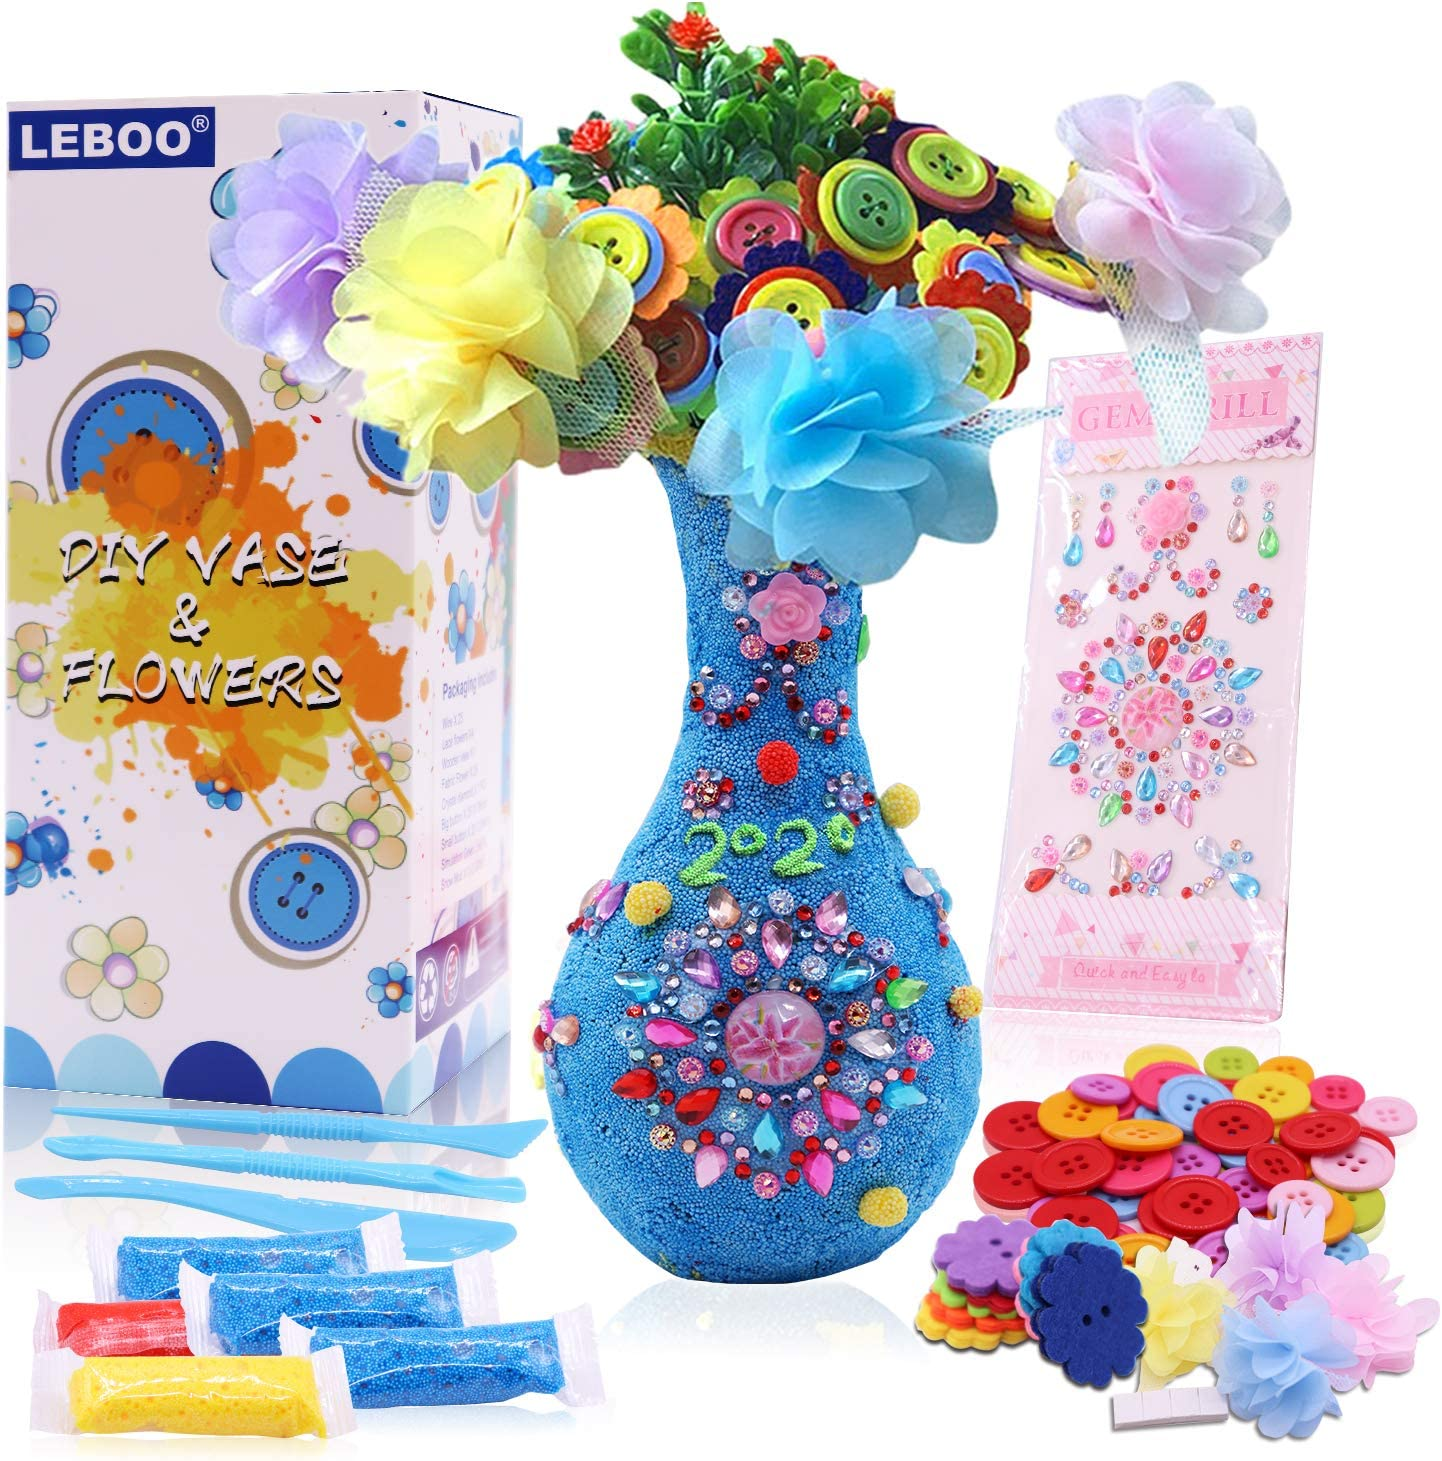 DIY Vase and Flowers Fun Art Craft Kit for Girls Boys Age 4 5 6 7 8 9 10 Creativity Project for Birthday Mothers Day Party Game Kids Activities LEBOO Arts and Crafts Gifts for Kids